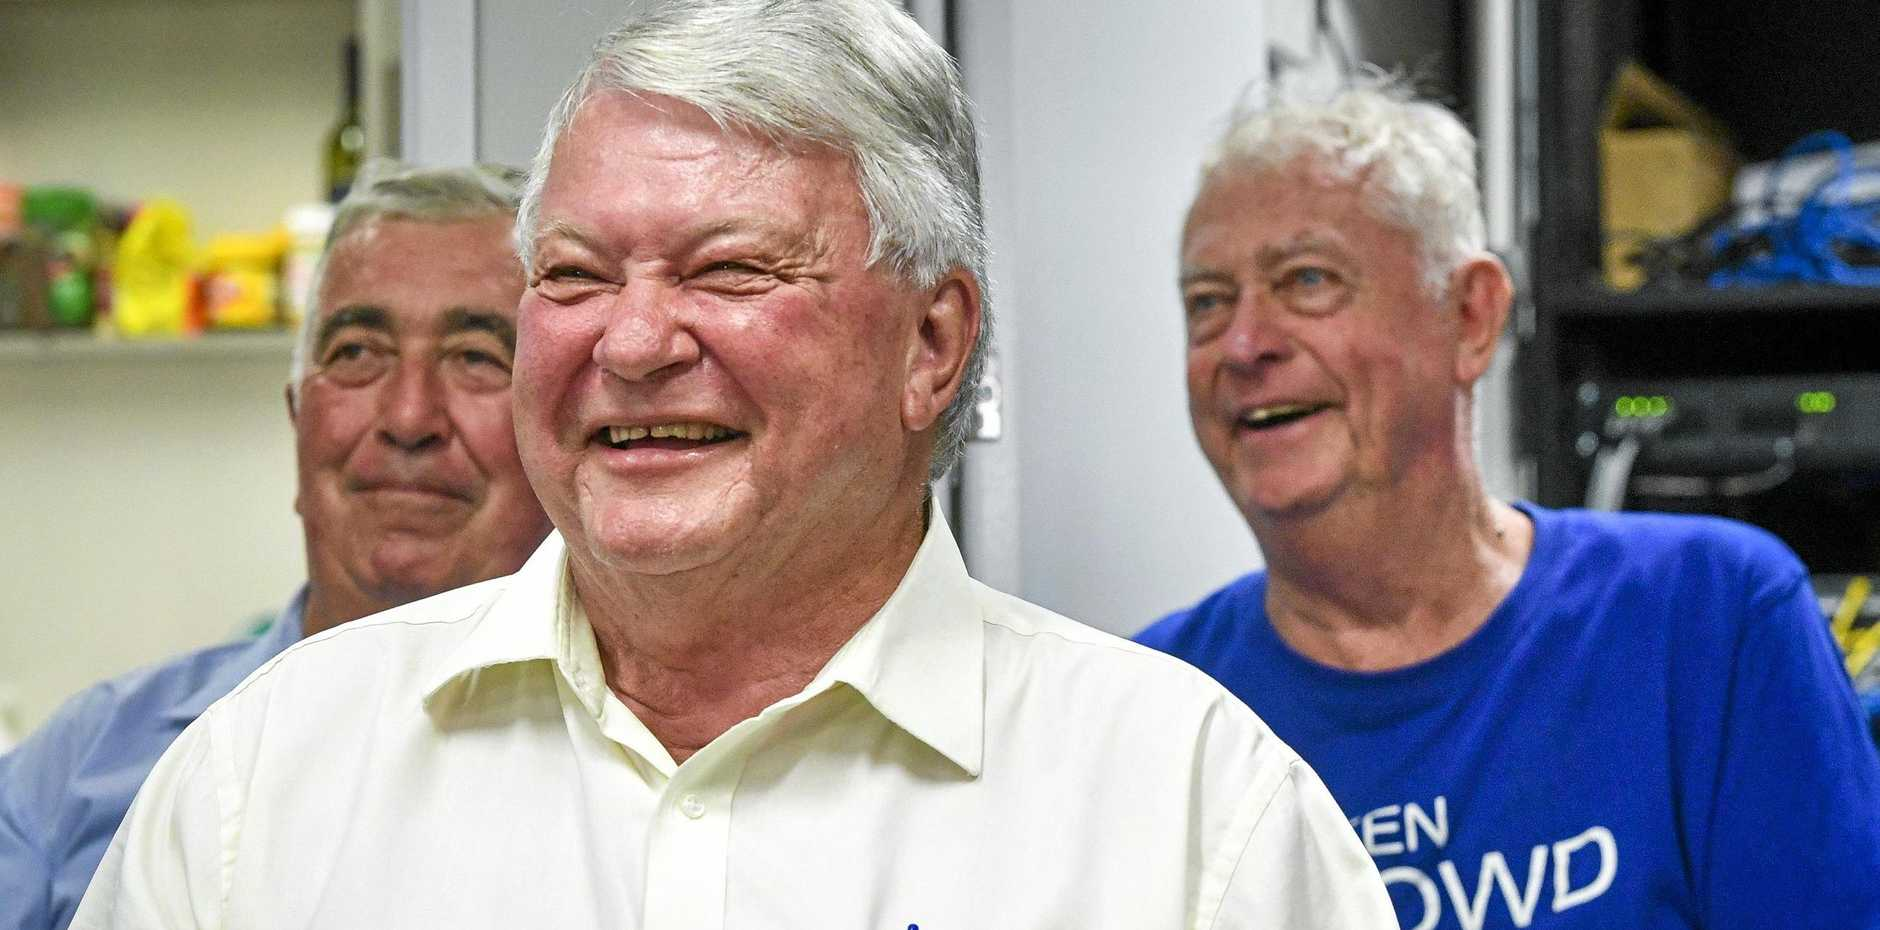 Ken O'Dowd is holding a low key party at his office on the night of the 2019 federal election surrounded by some of his volunteers and supporters.